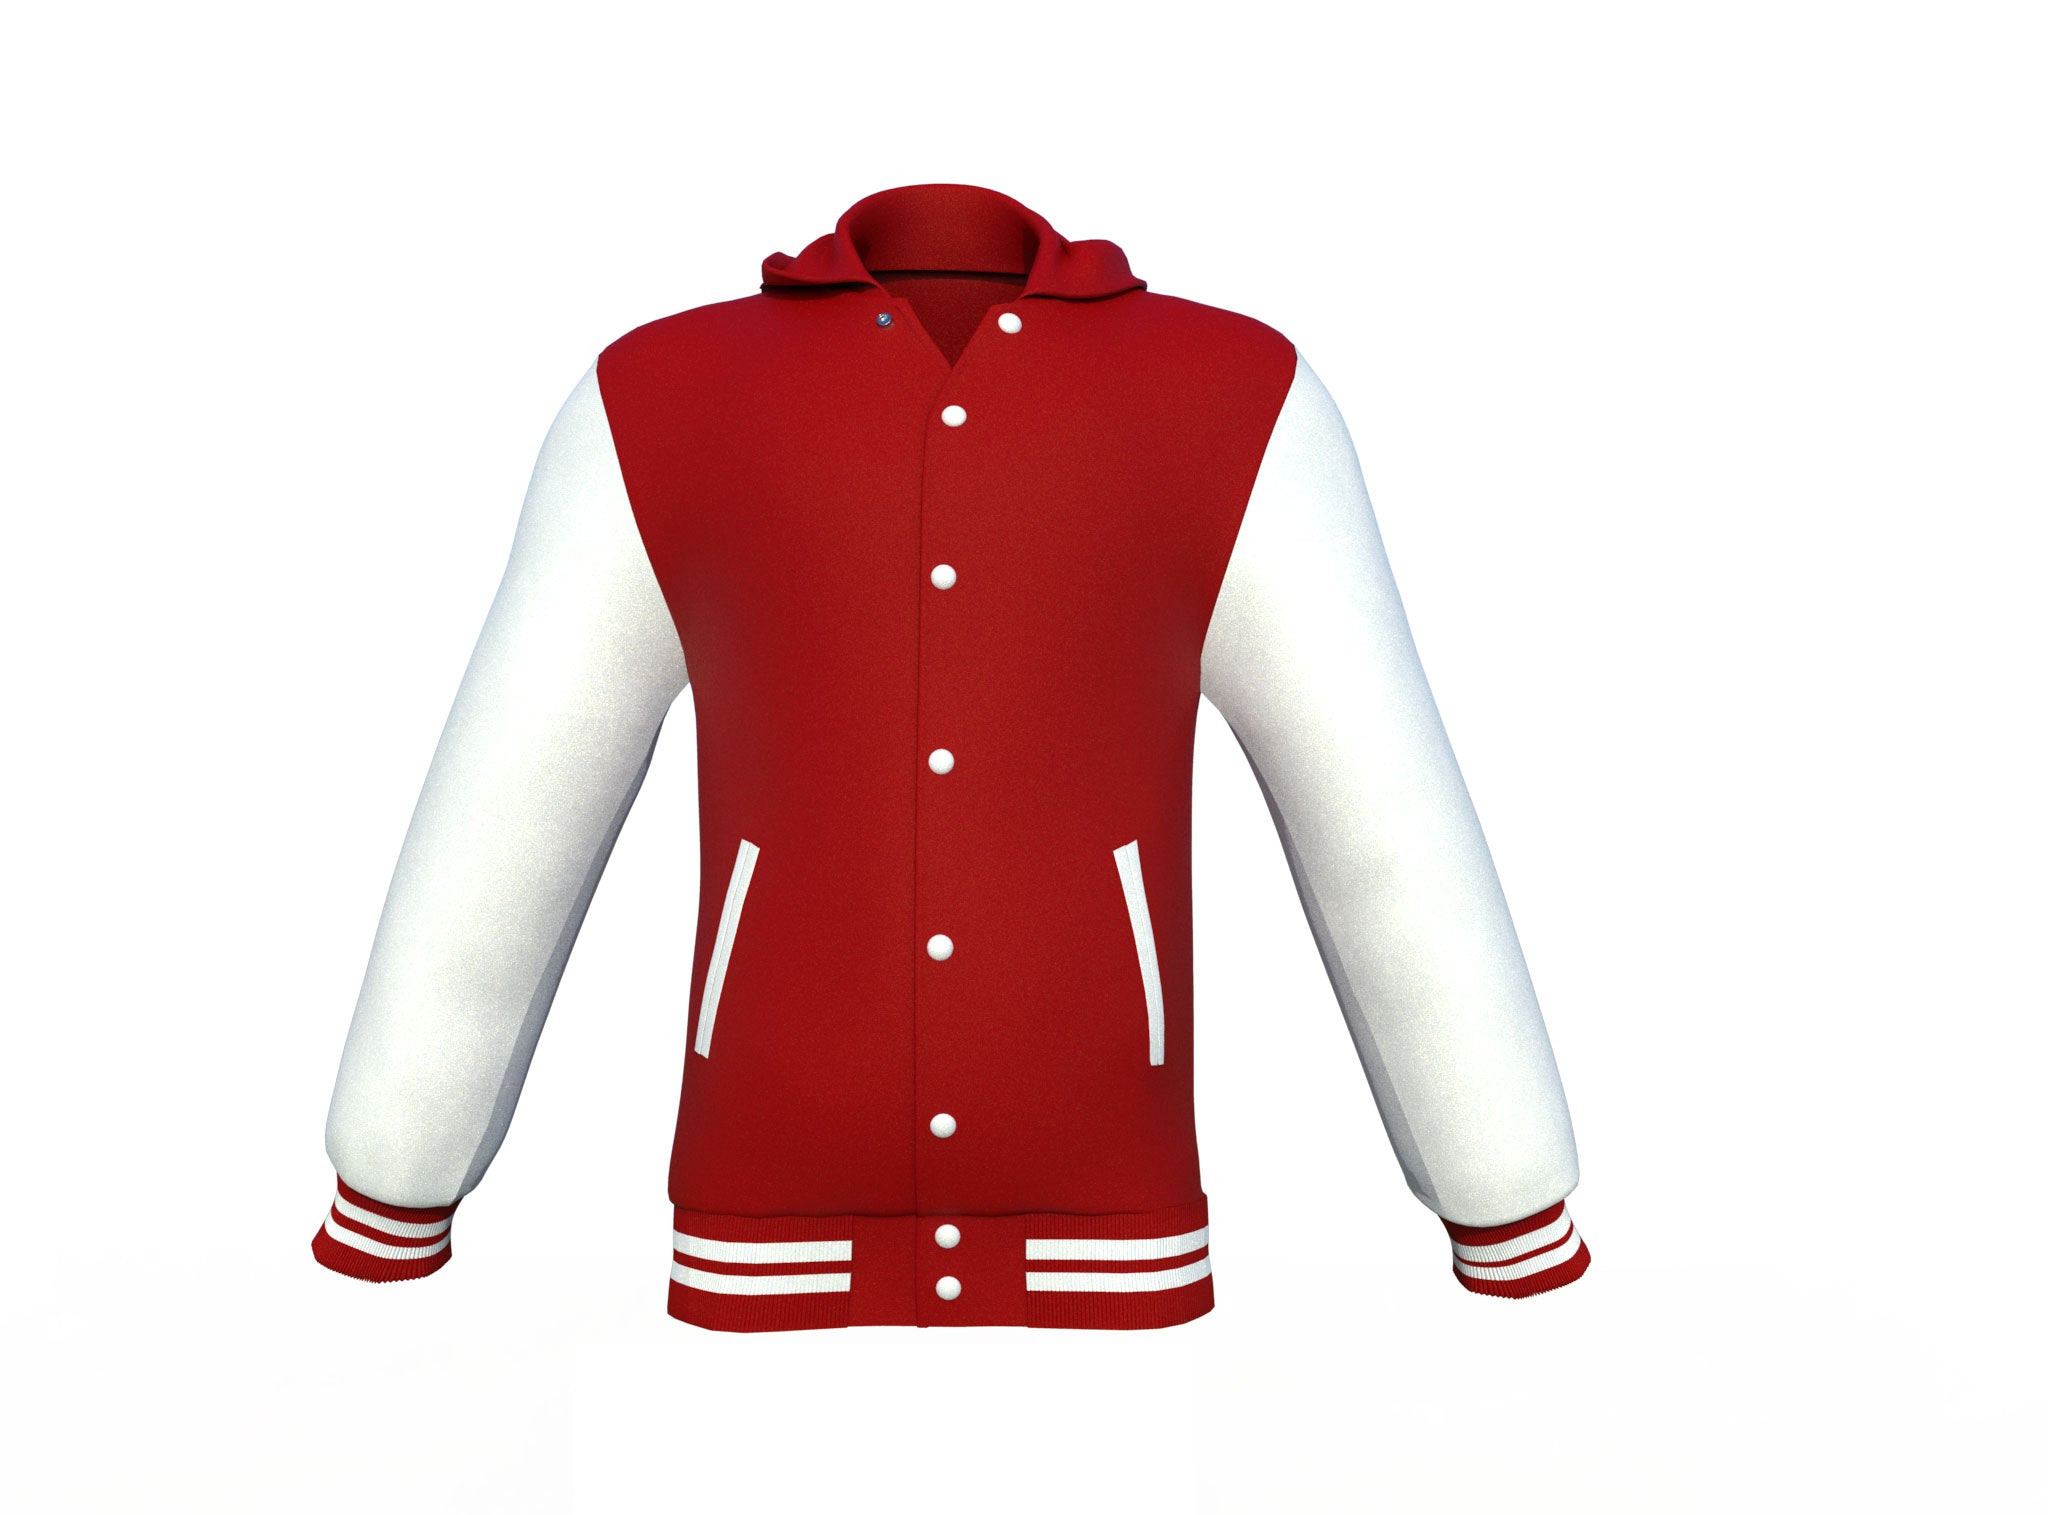 Maroon Varsity Letterman Jacket with White Sleeves